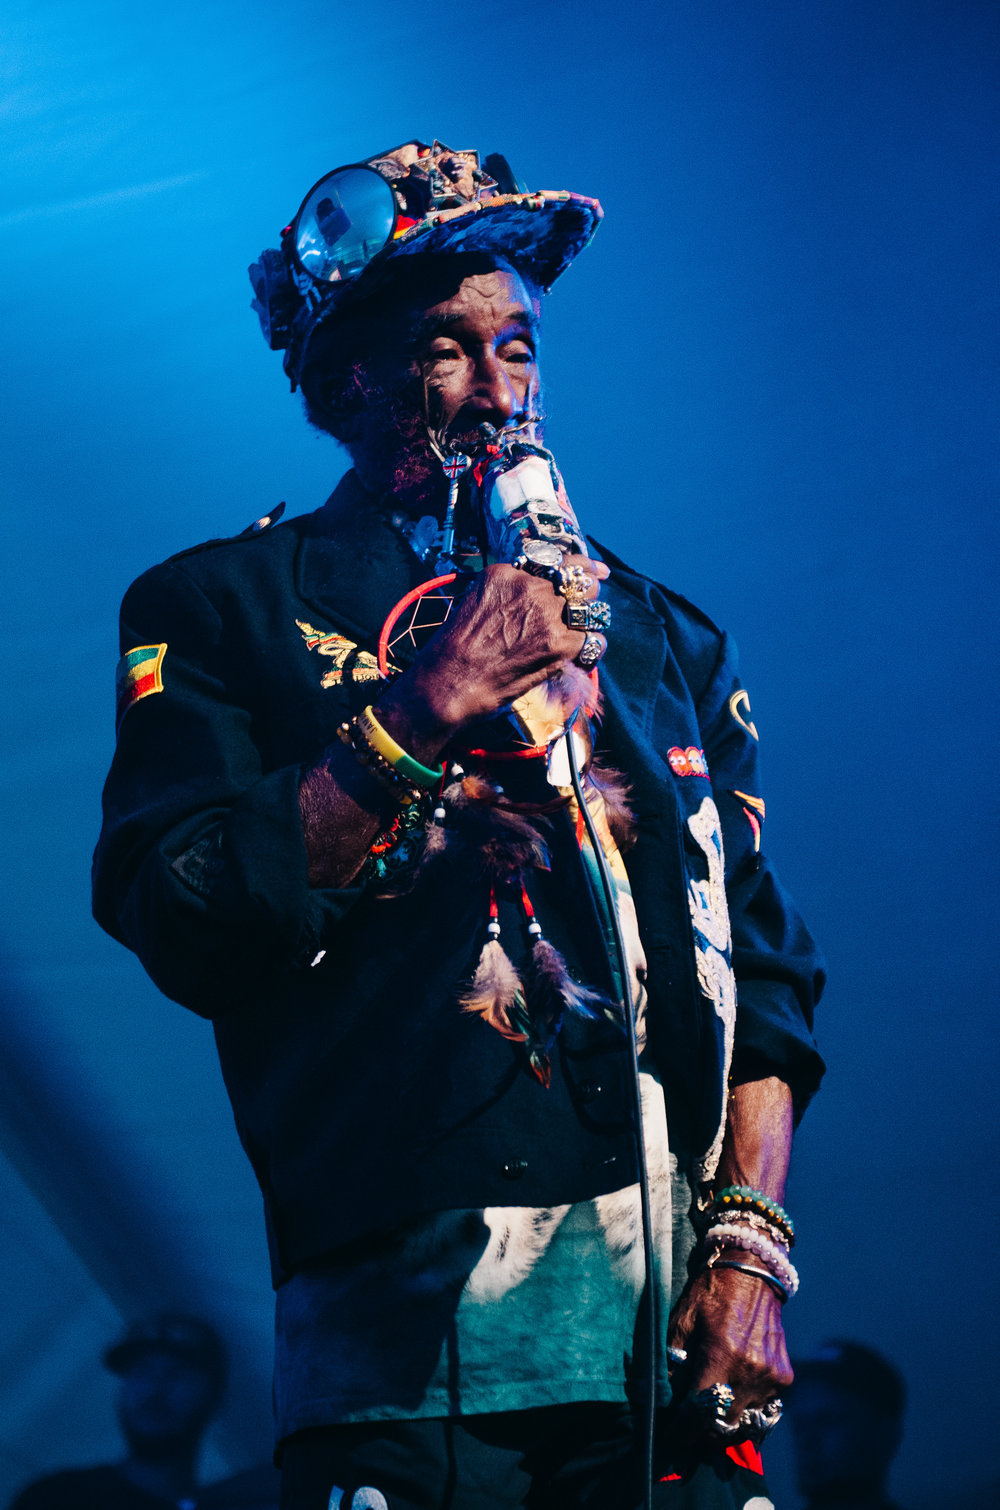 3_Lee_Scratch_Perry_Rifflandia-Timothy_Nguyen-20160916 (2 of 10).jpg